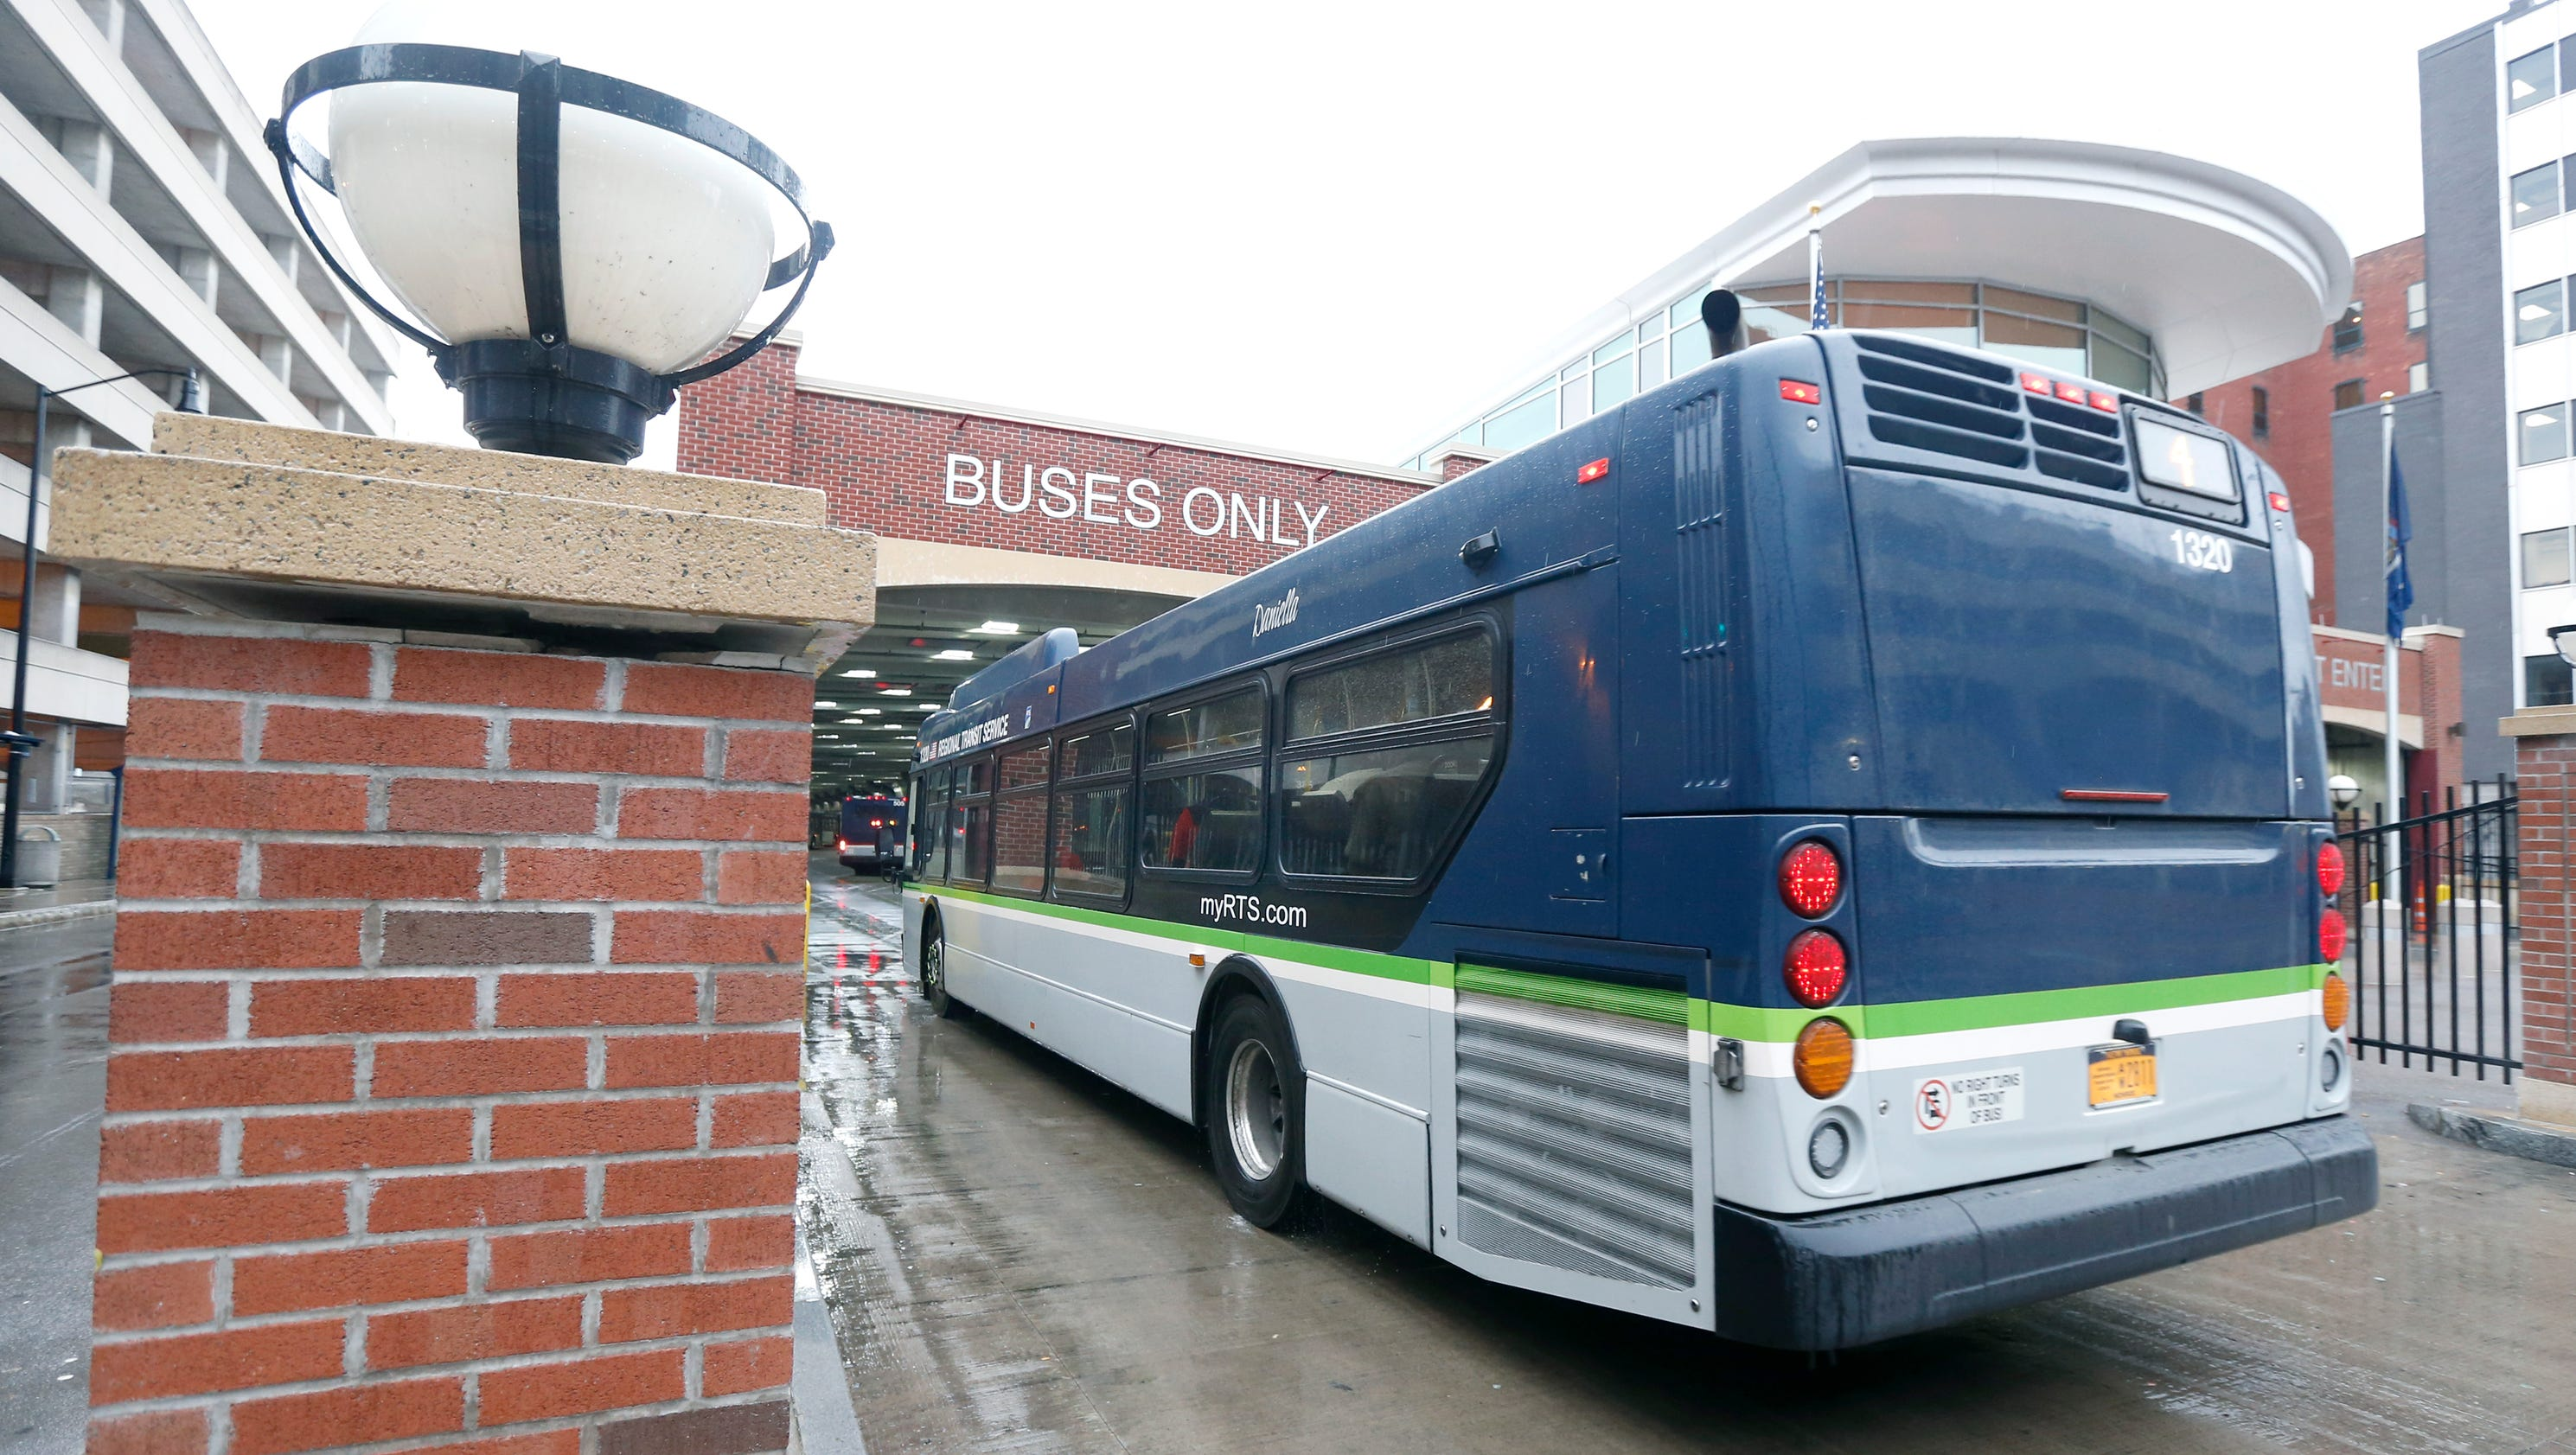 Rochester Ny Restored Old Look Bus: RTS Looks At Overhaul Of Transit System In Rochester